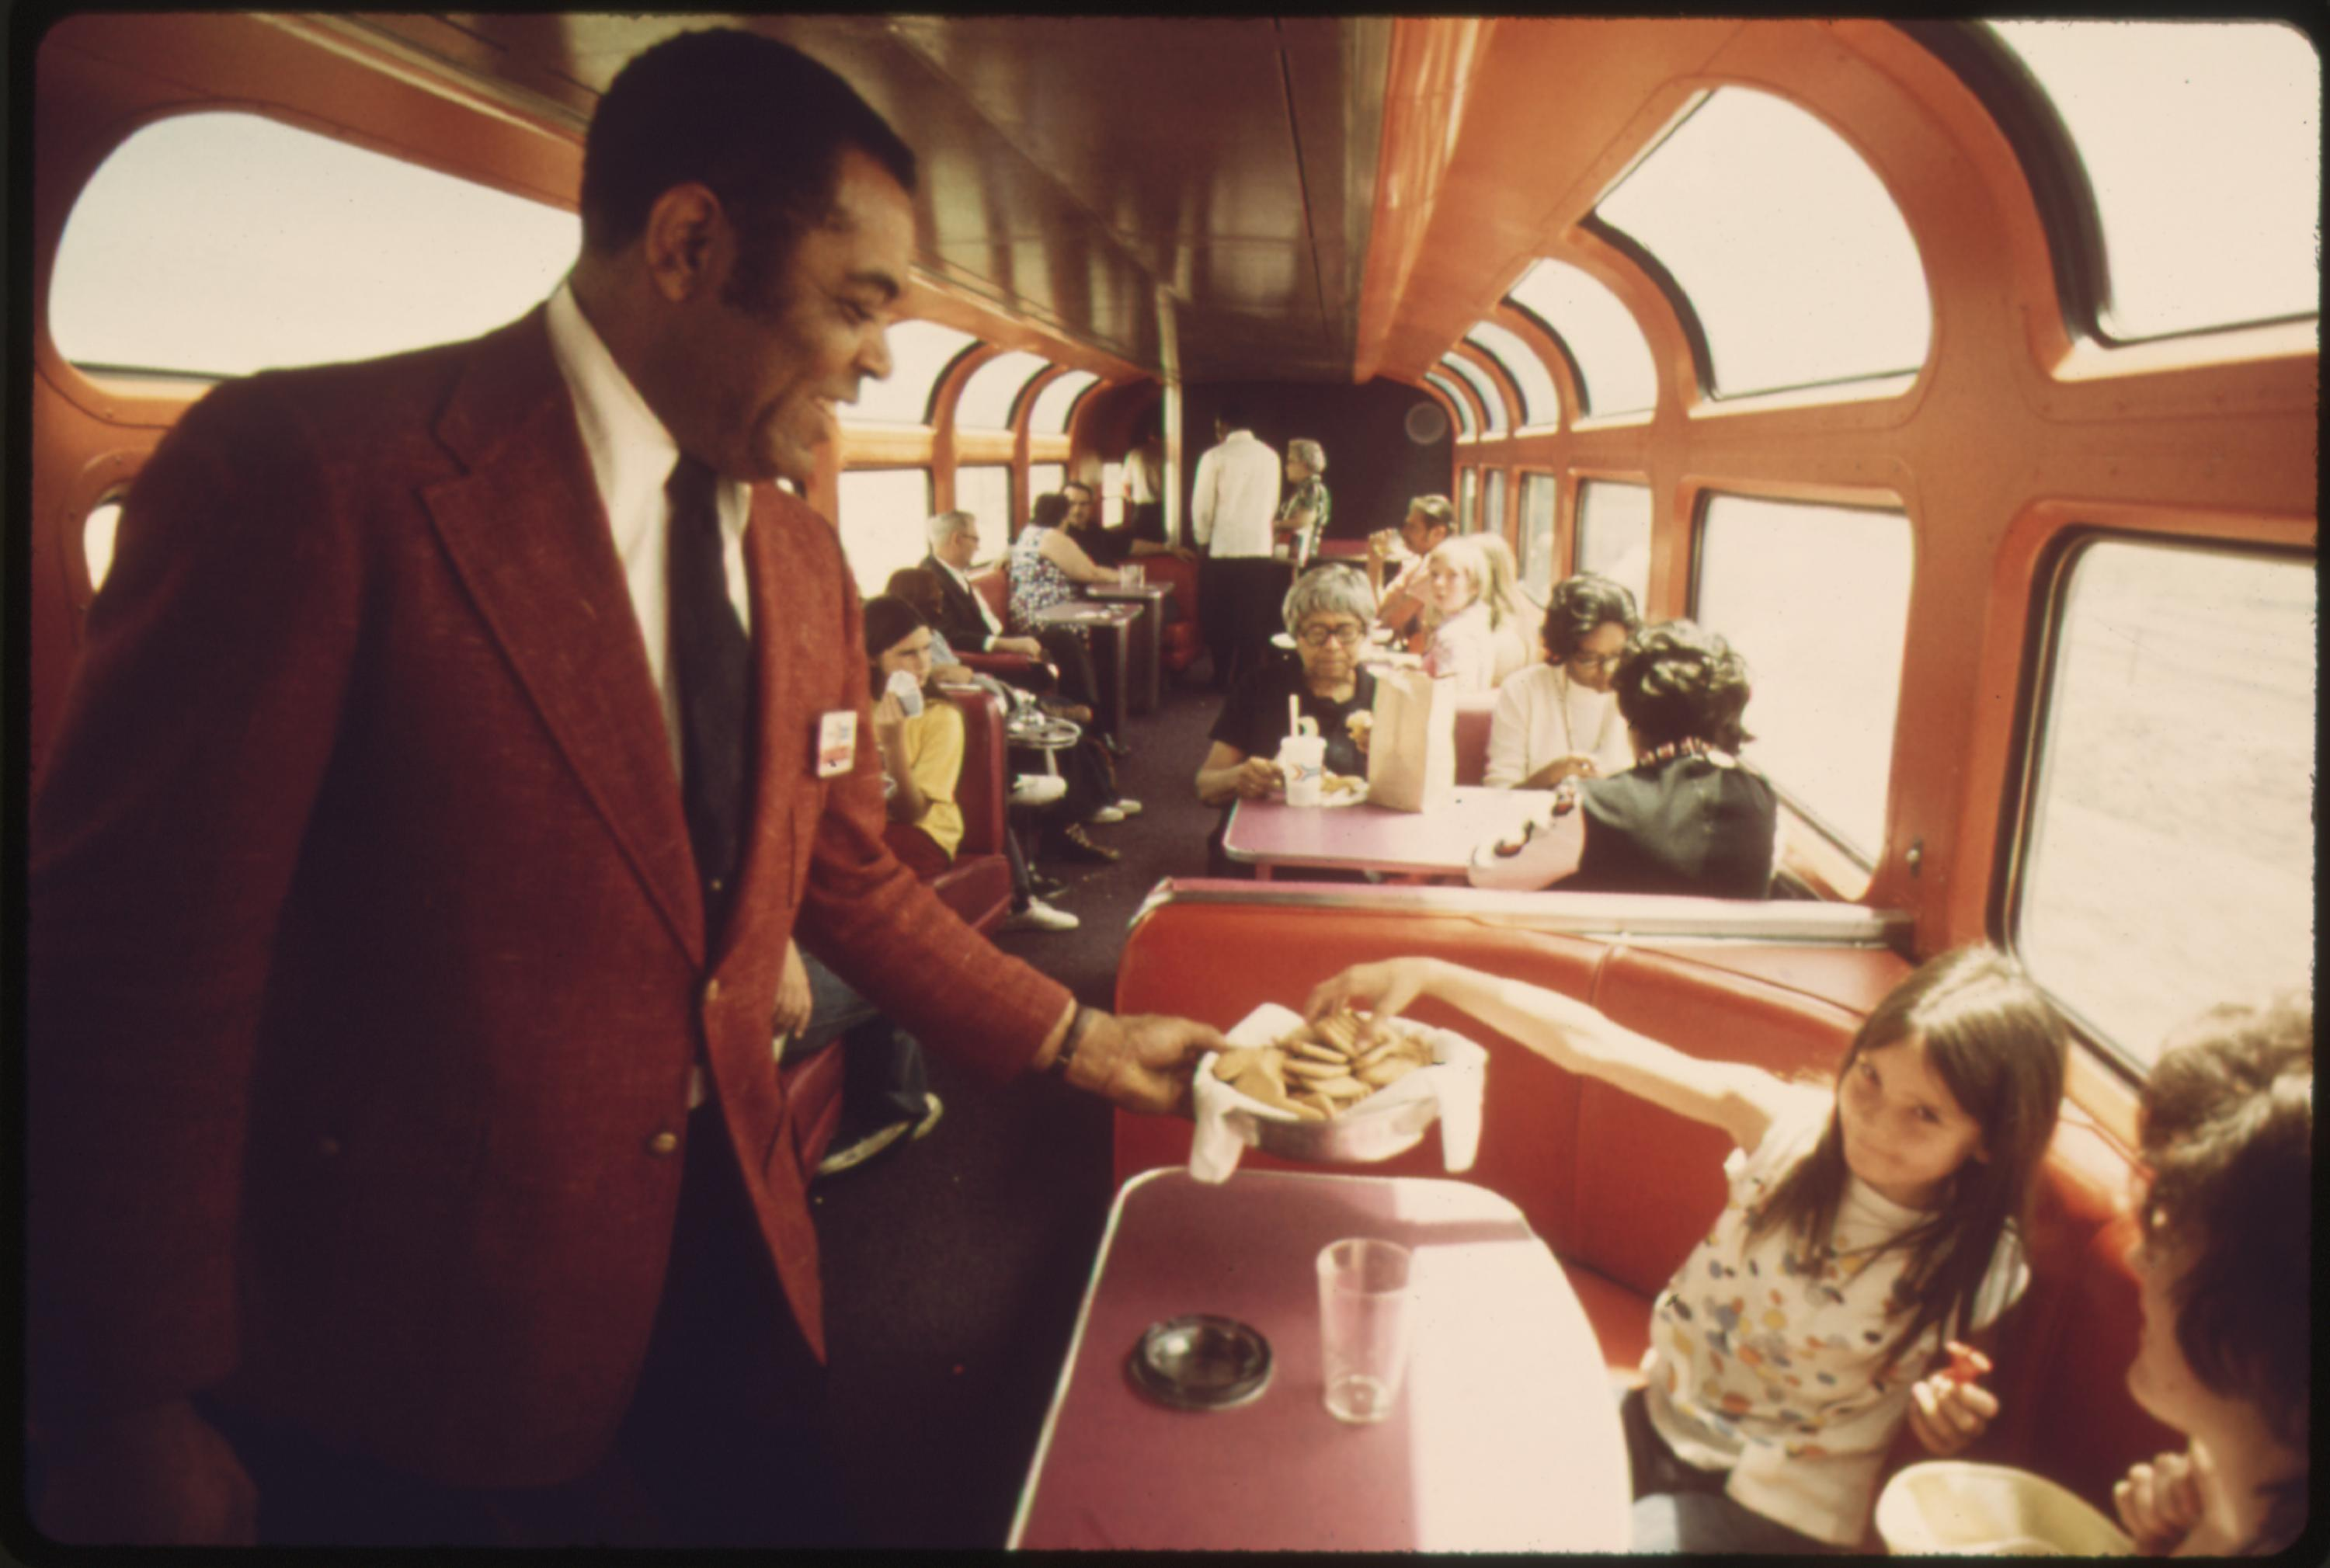 An Amtrak passenger service director serves cookies to passengers in the lounge car of the Southwest Limited enroute from Albuquerque, New Mexico, to Dodge City, Kansas, June 1974